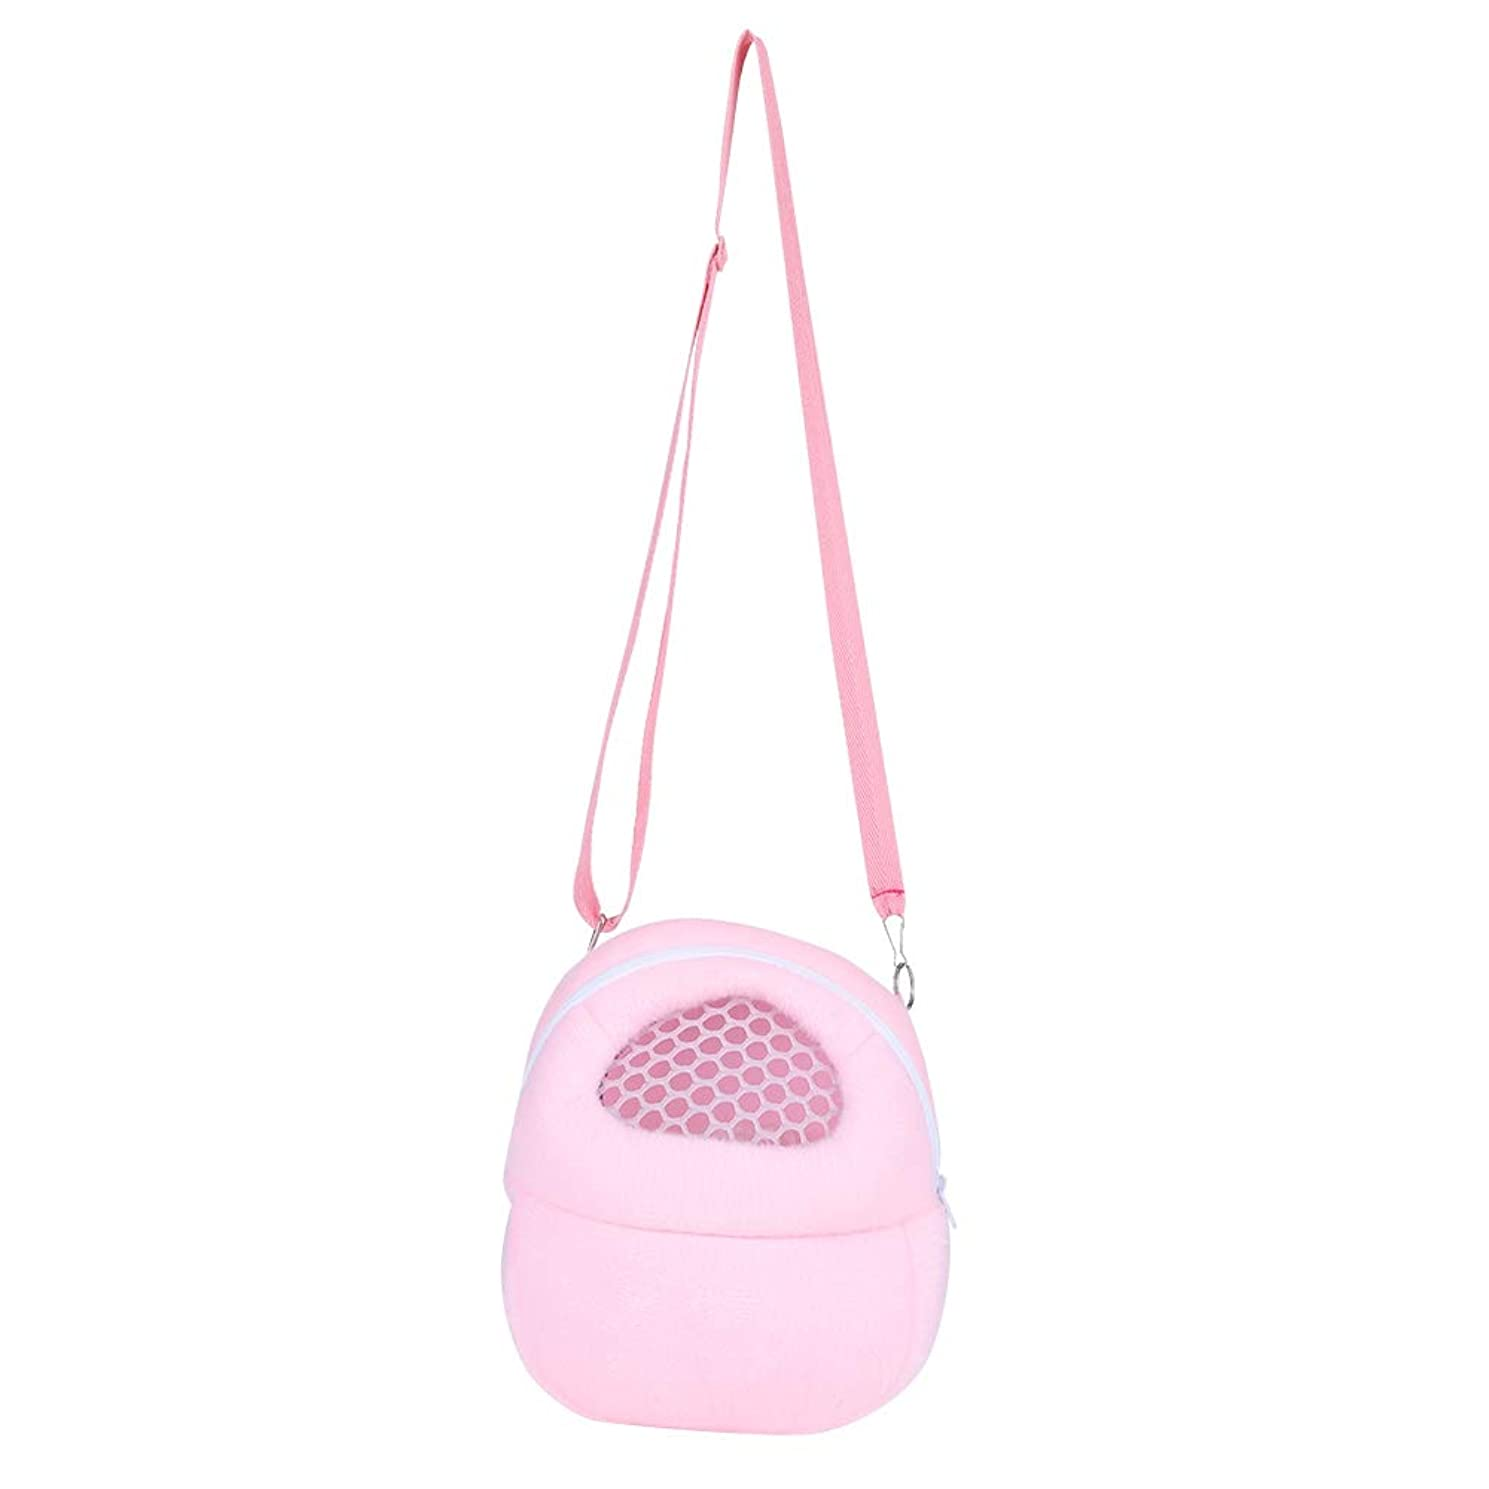 HEEPDD Pet Carrier Bag, Hamster Carrier Portable Breathable Outgoing Travel Bag with Shoulder Strap for Small Pets Hedgehog Sugar Glider Squirrel Rabbit